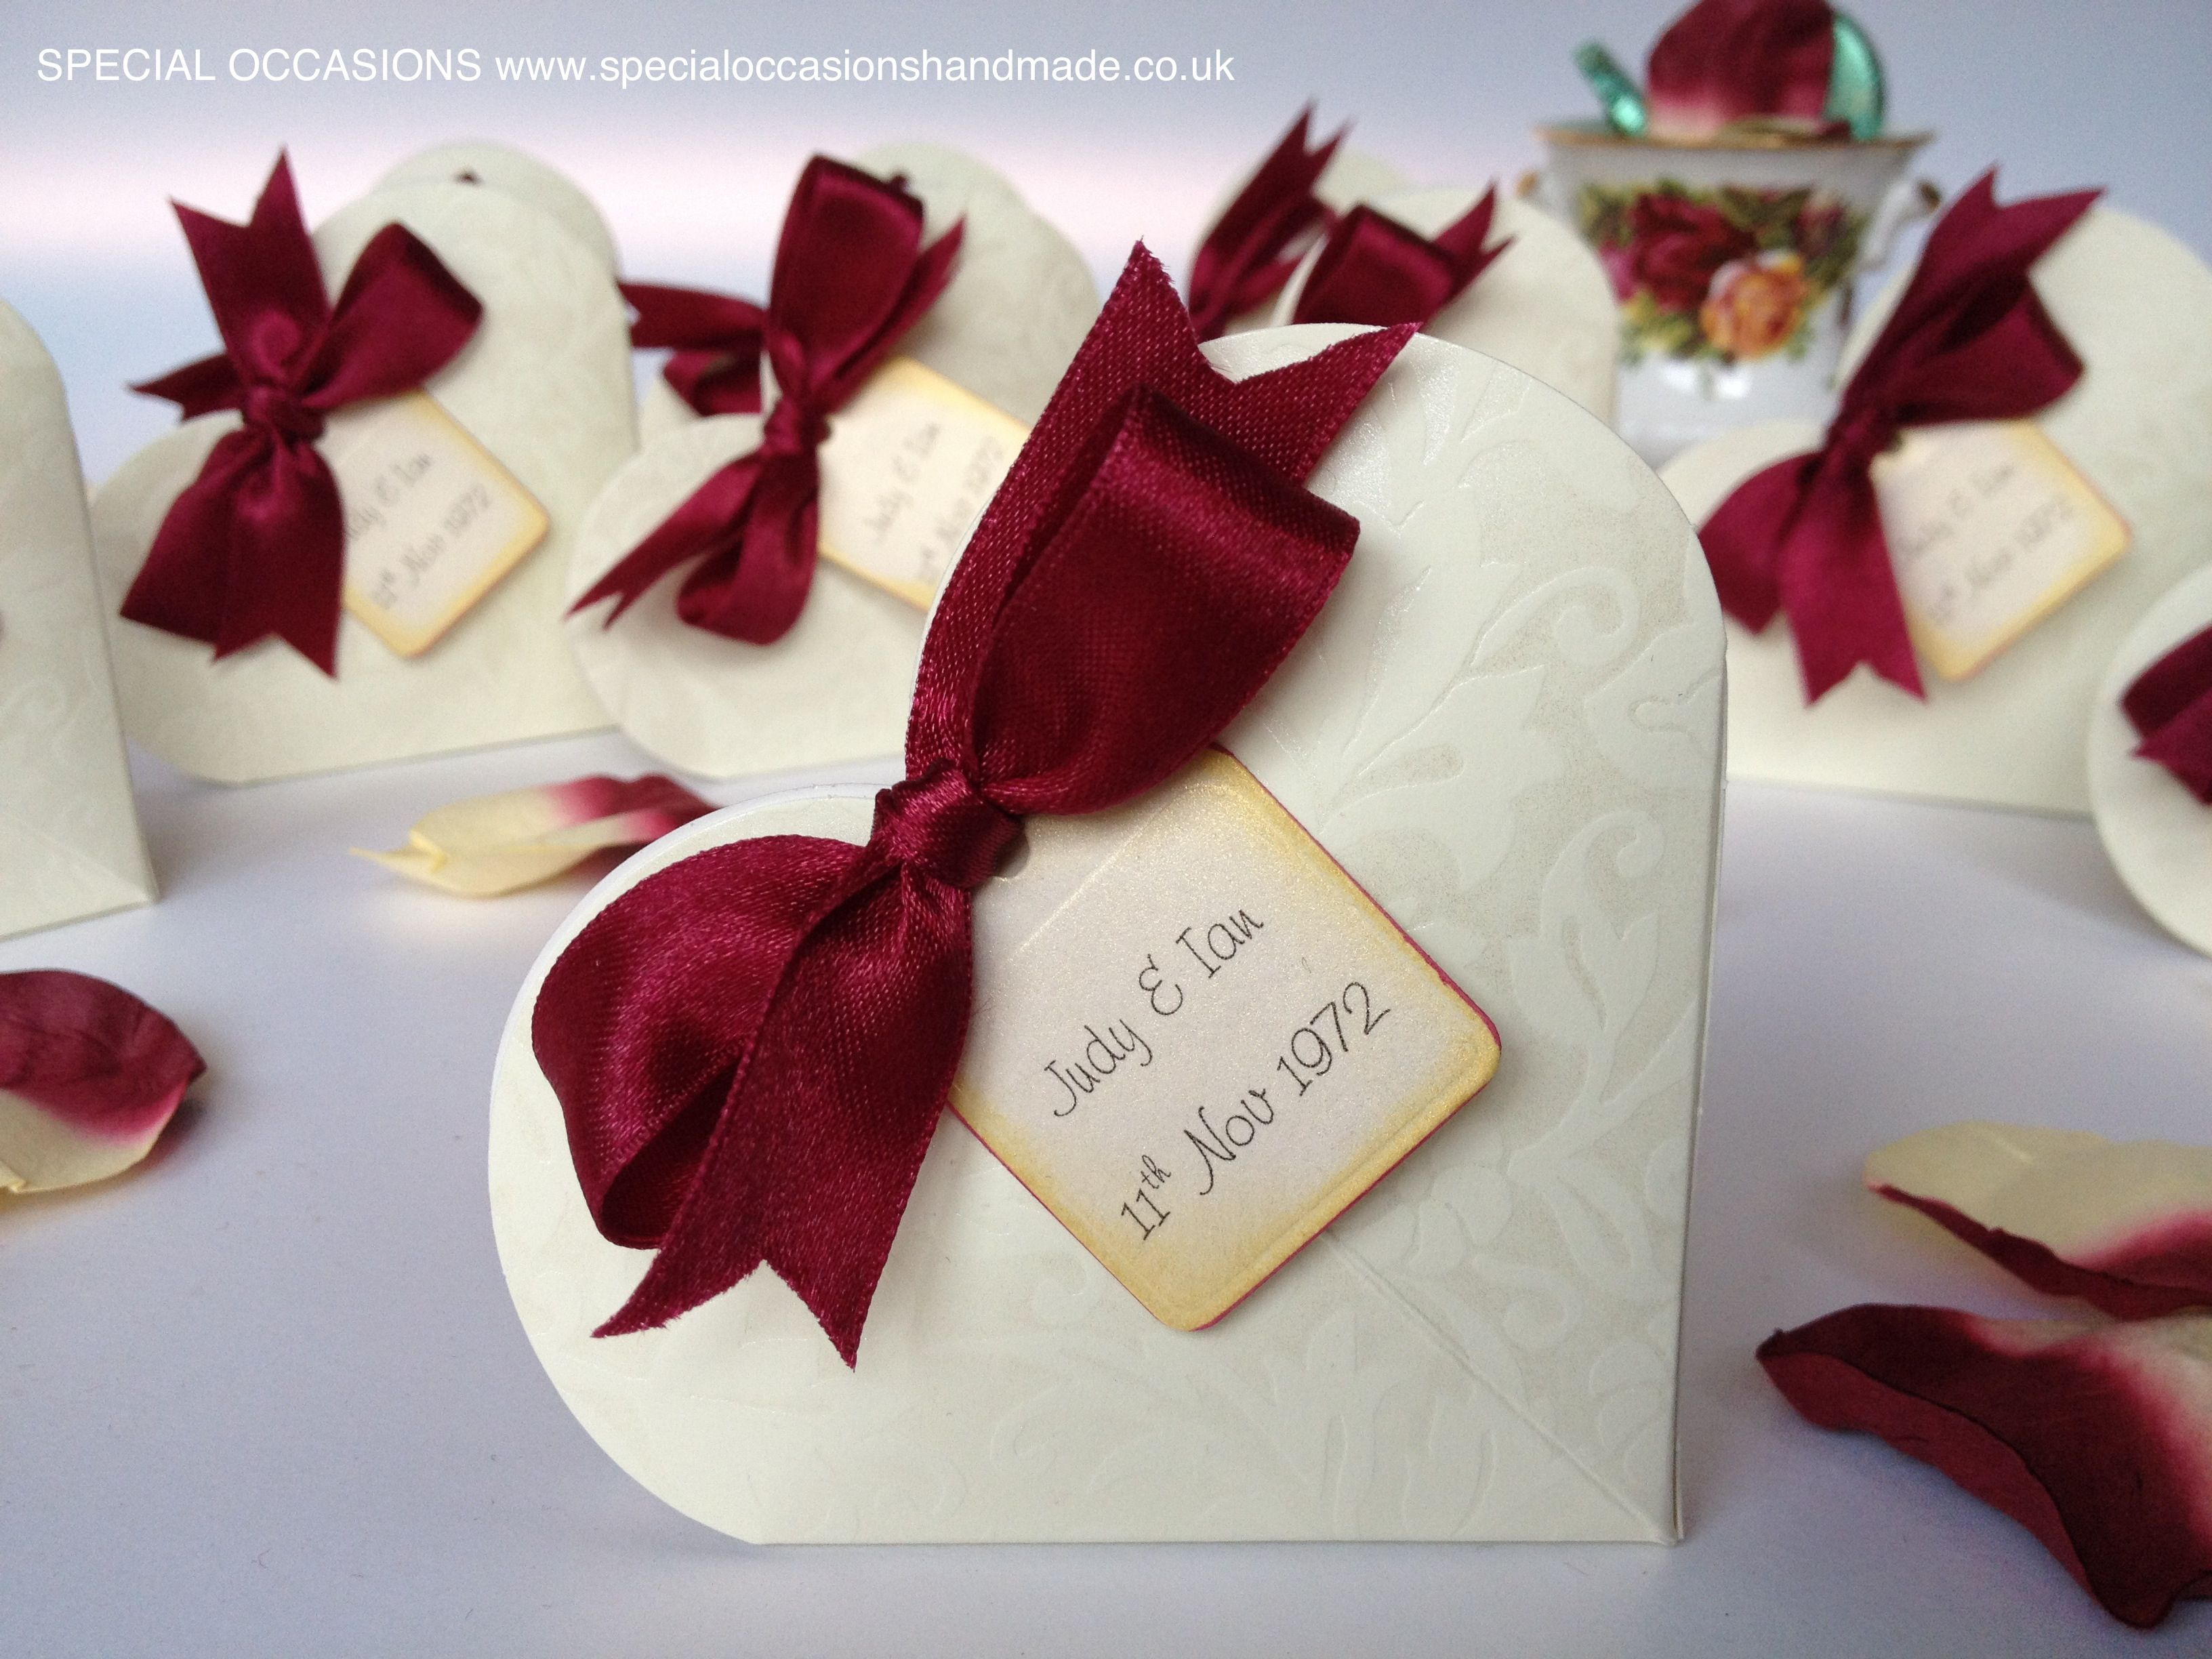 Unusual Ruby Wedding Gifts: Ruby Wedding Anniversary Favours. Www